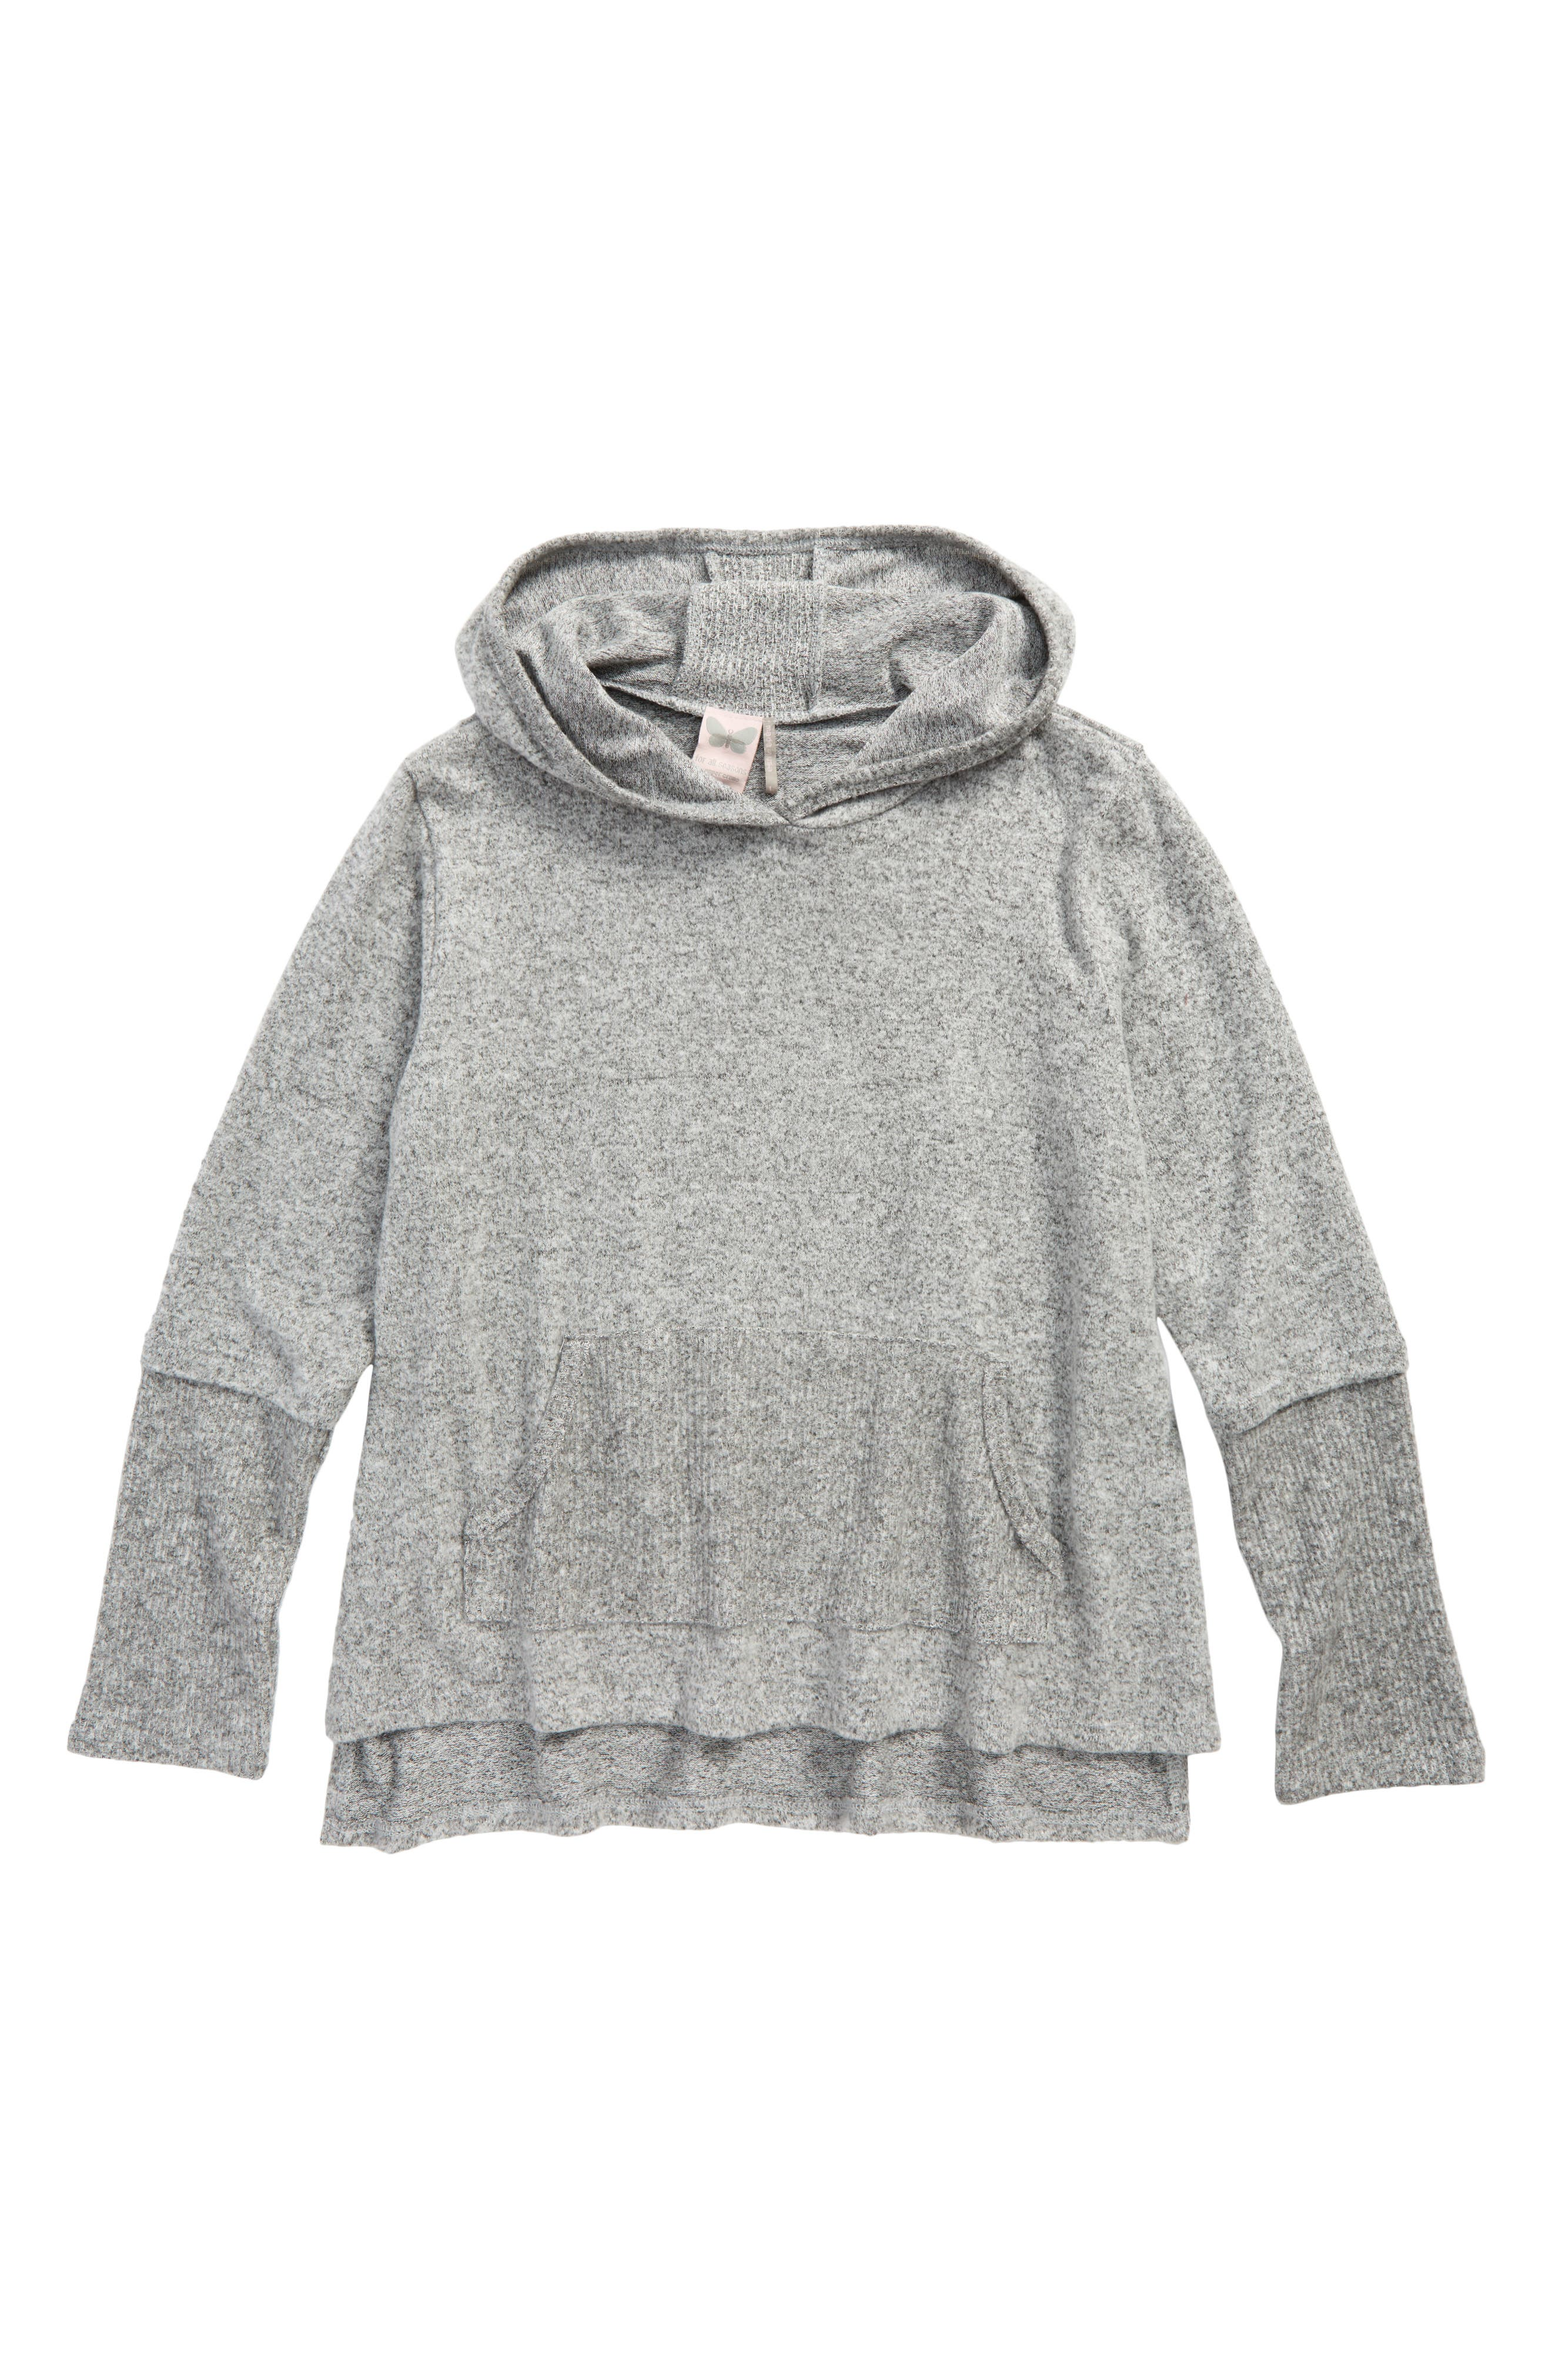 Main Image - For All Seasons Knit Hoodie (Big Girls)